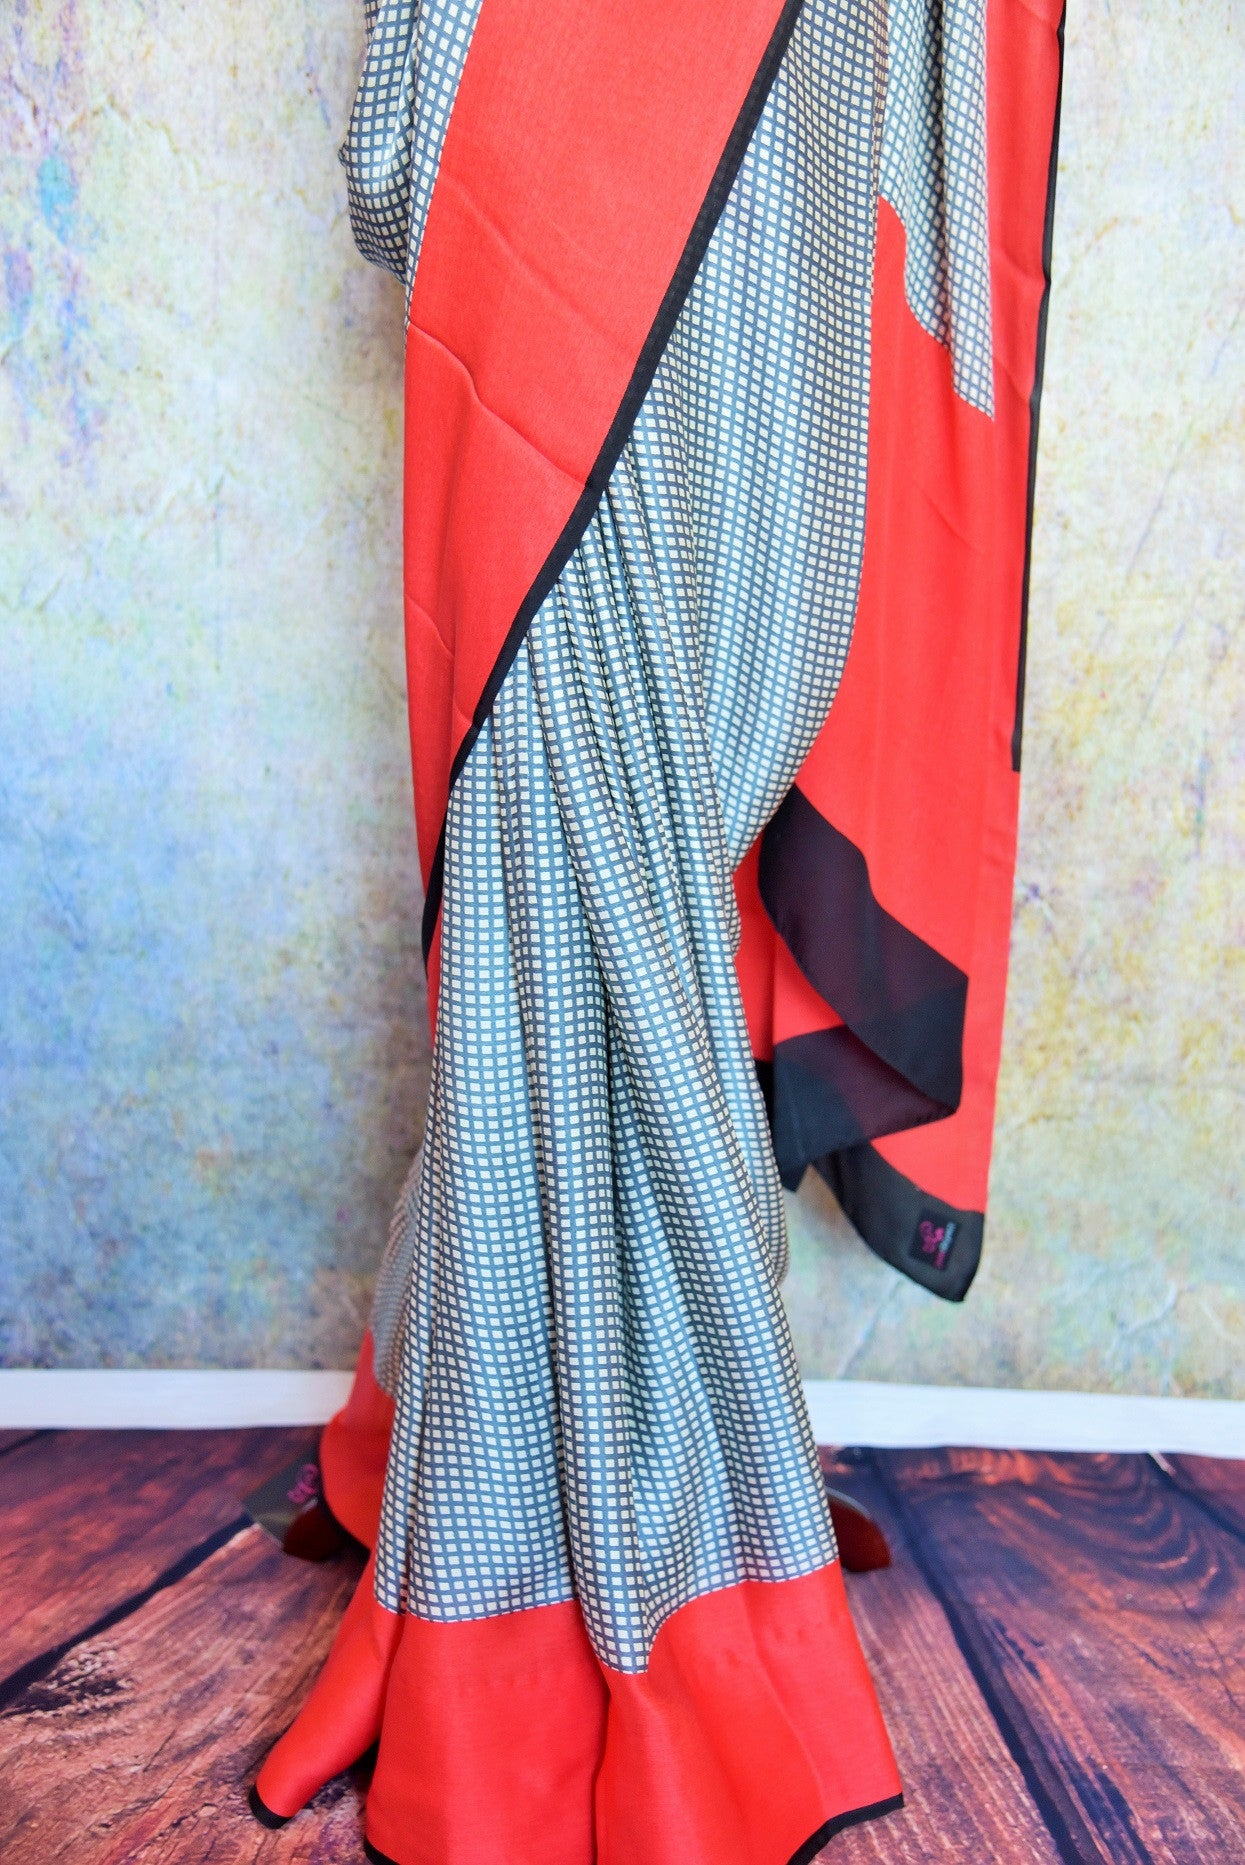 90B570 This printed saree is ideal for party wear & small Indian wedding functions. With a checked pattern & red border, this ethnic crepe silk saree will be a lovely addition to your ethnic clothing wardrobe.